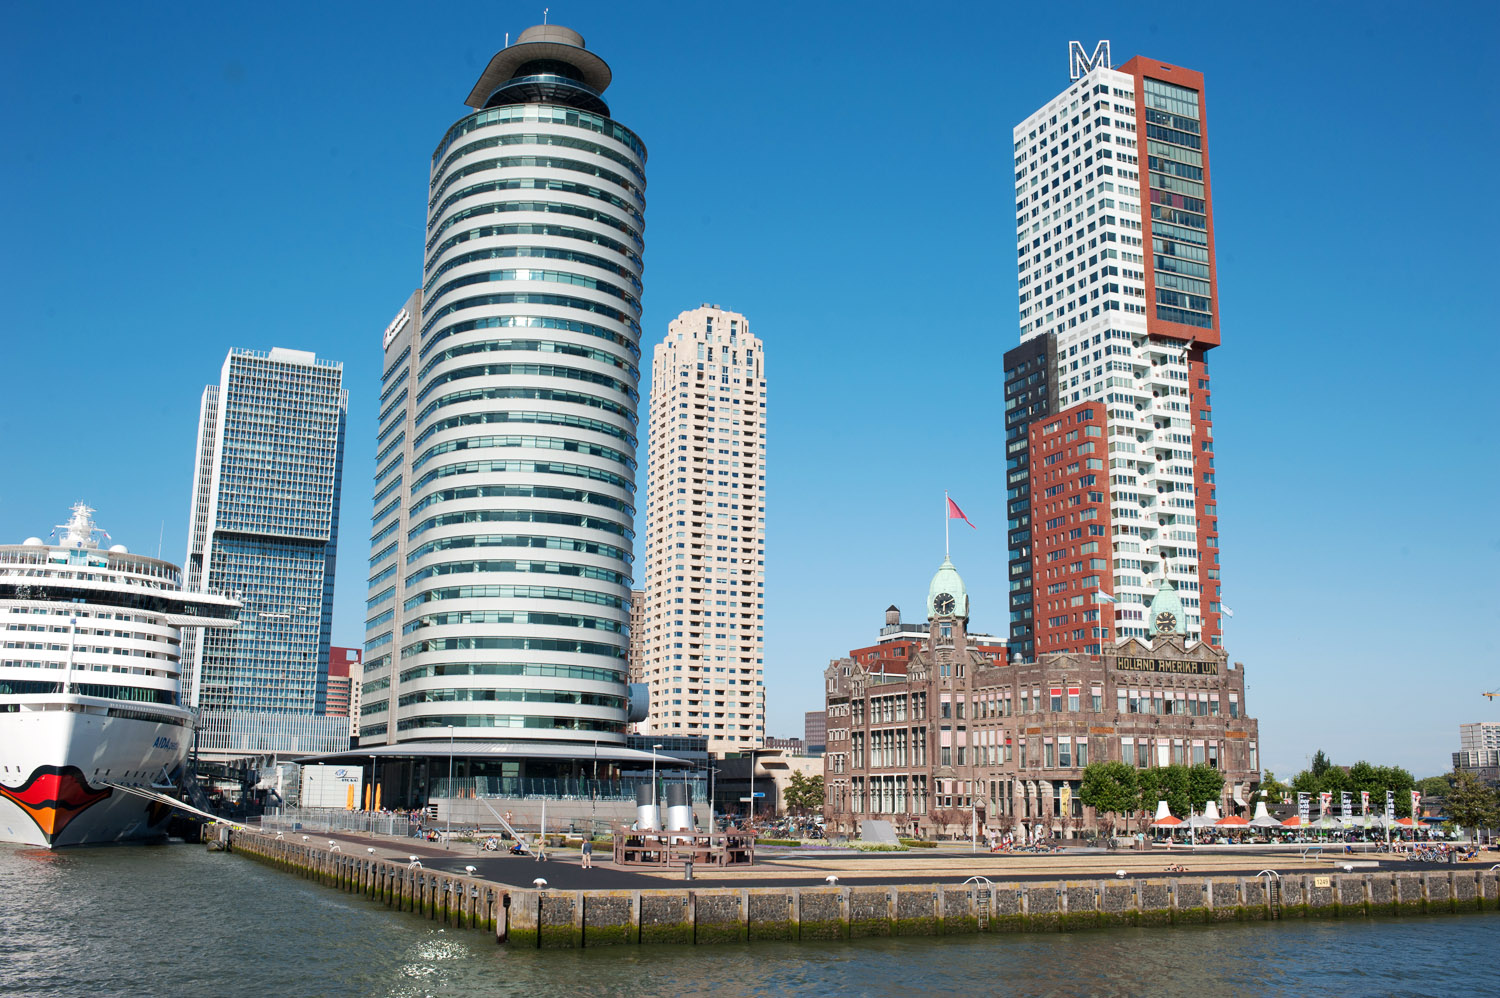 Rotterdam_City guide_ Quartier Hotel New York2.jpg